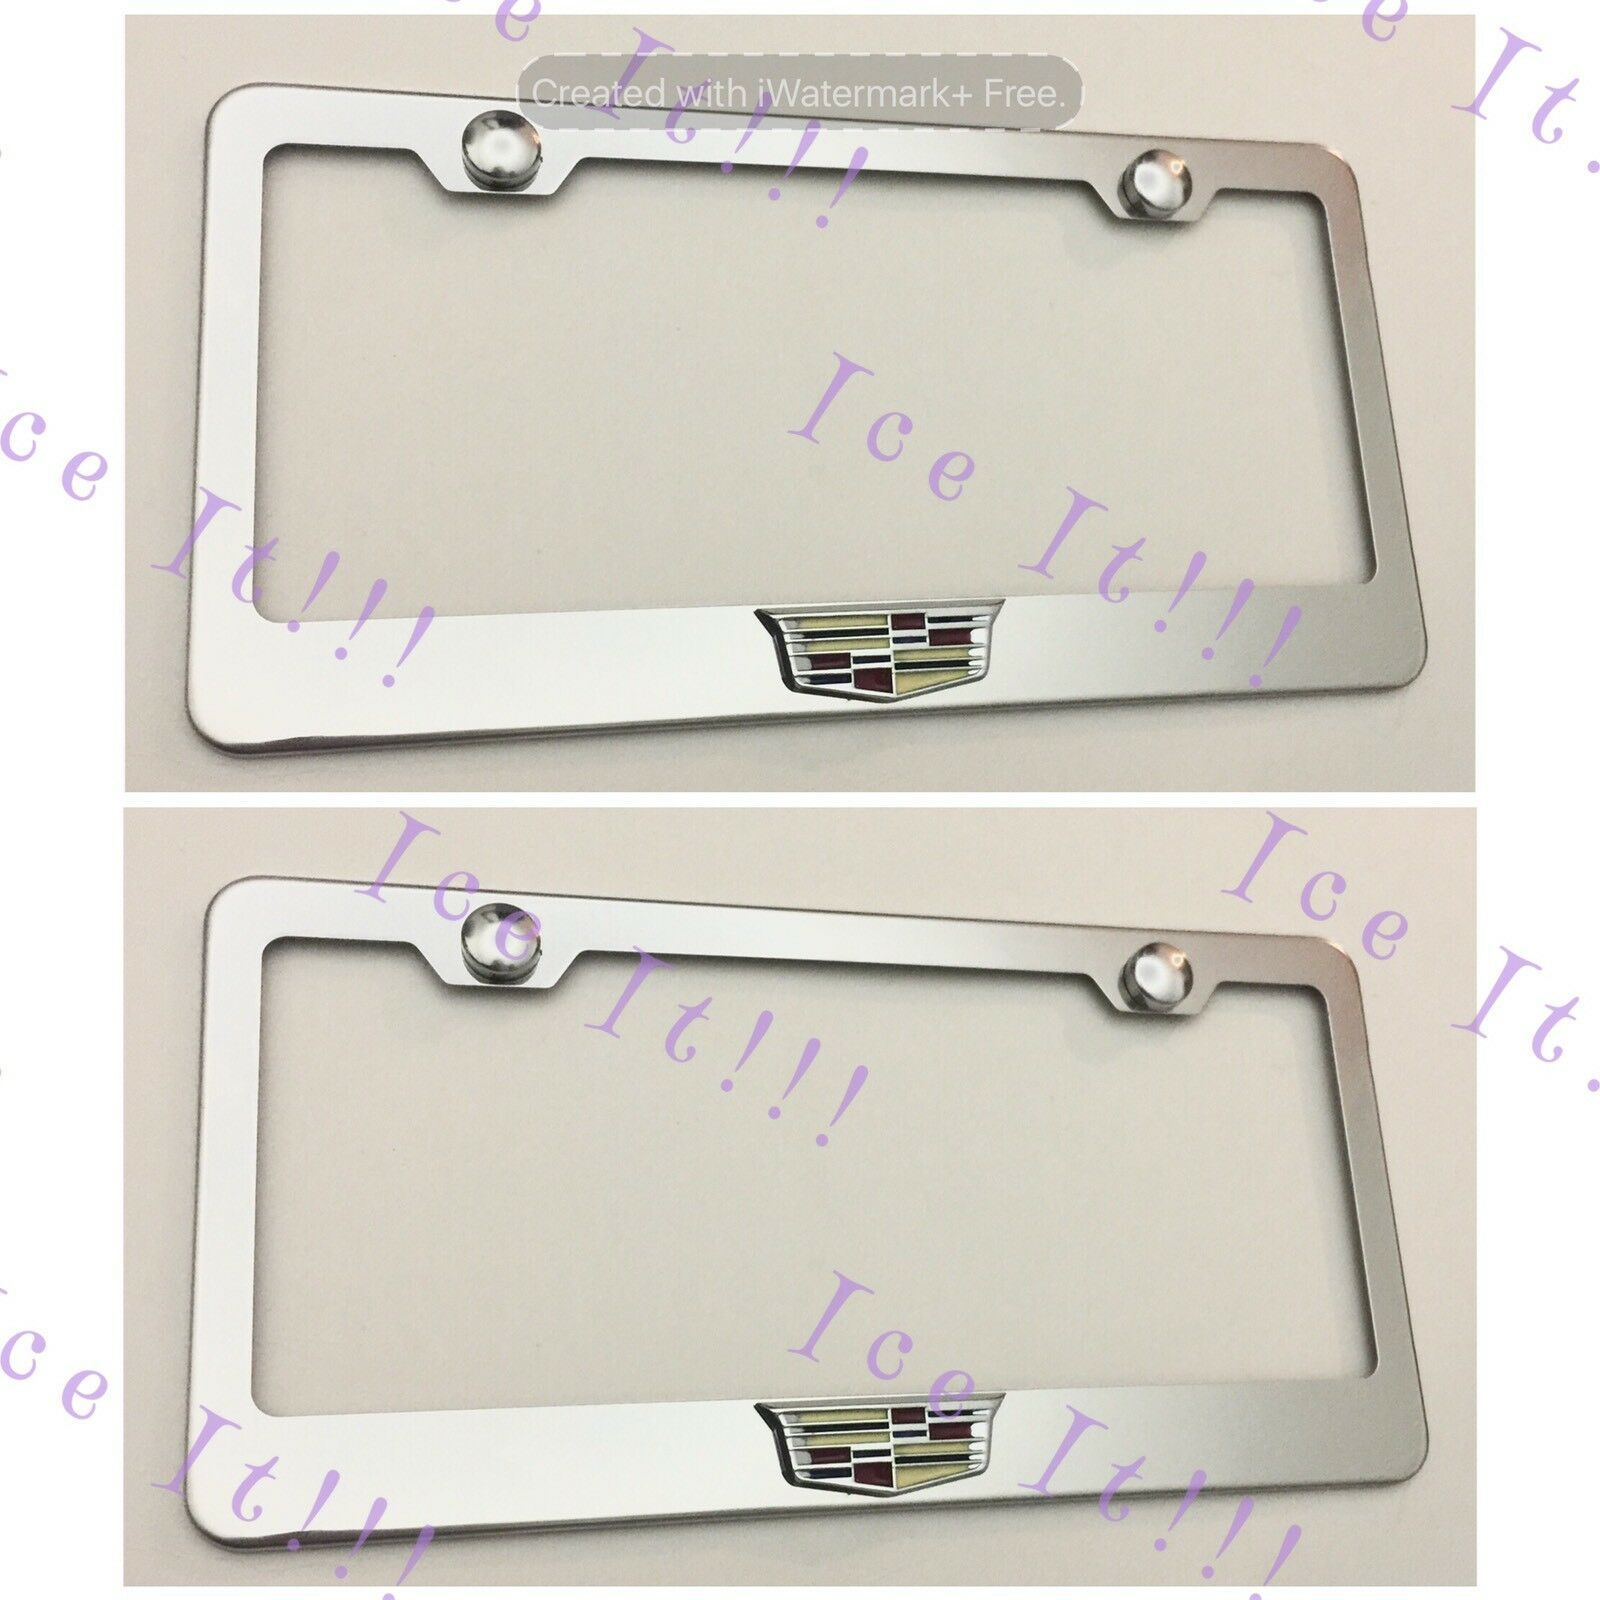 2X 3D For Cadillac ATS CTS SRX Emblem Stainless Steel License Plate Frame W Caps - $35.63